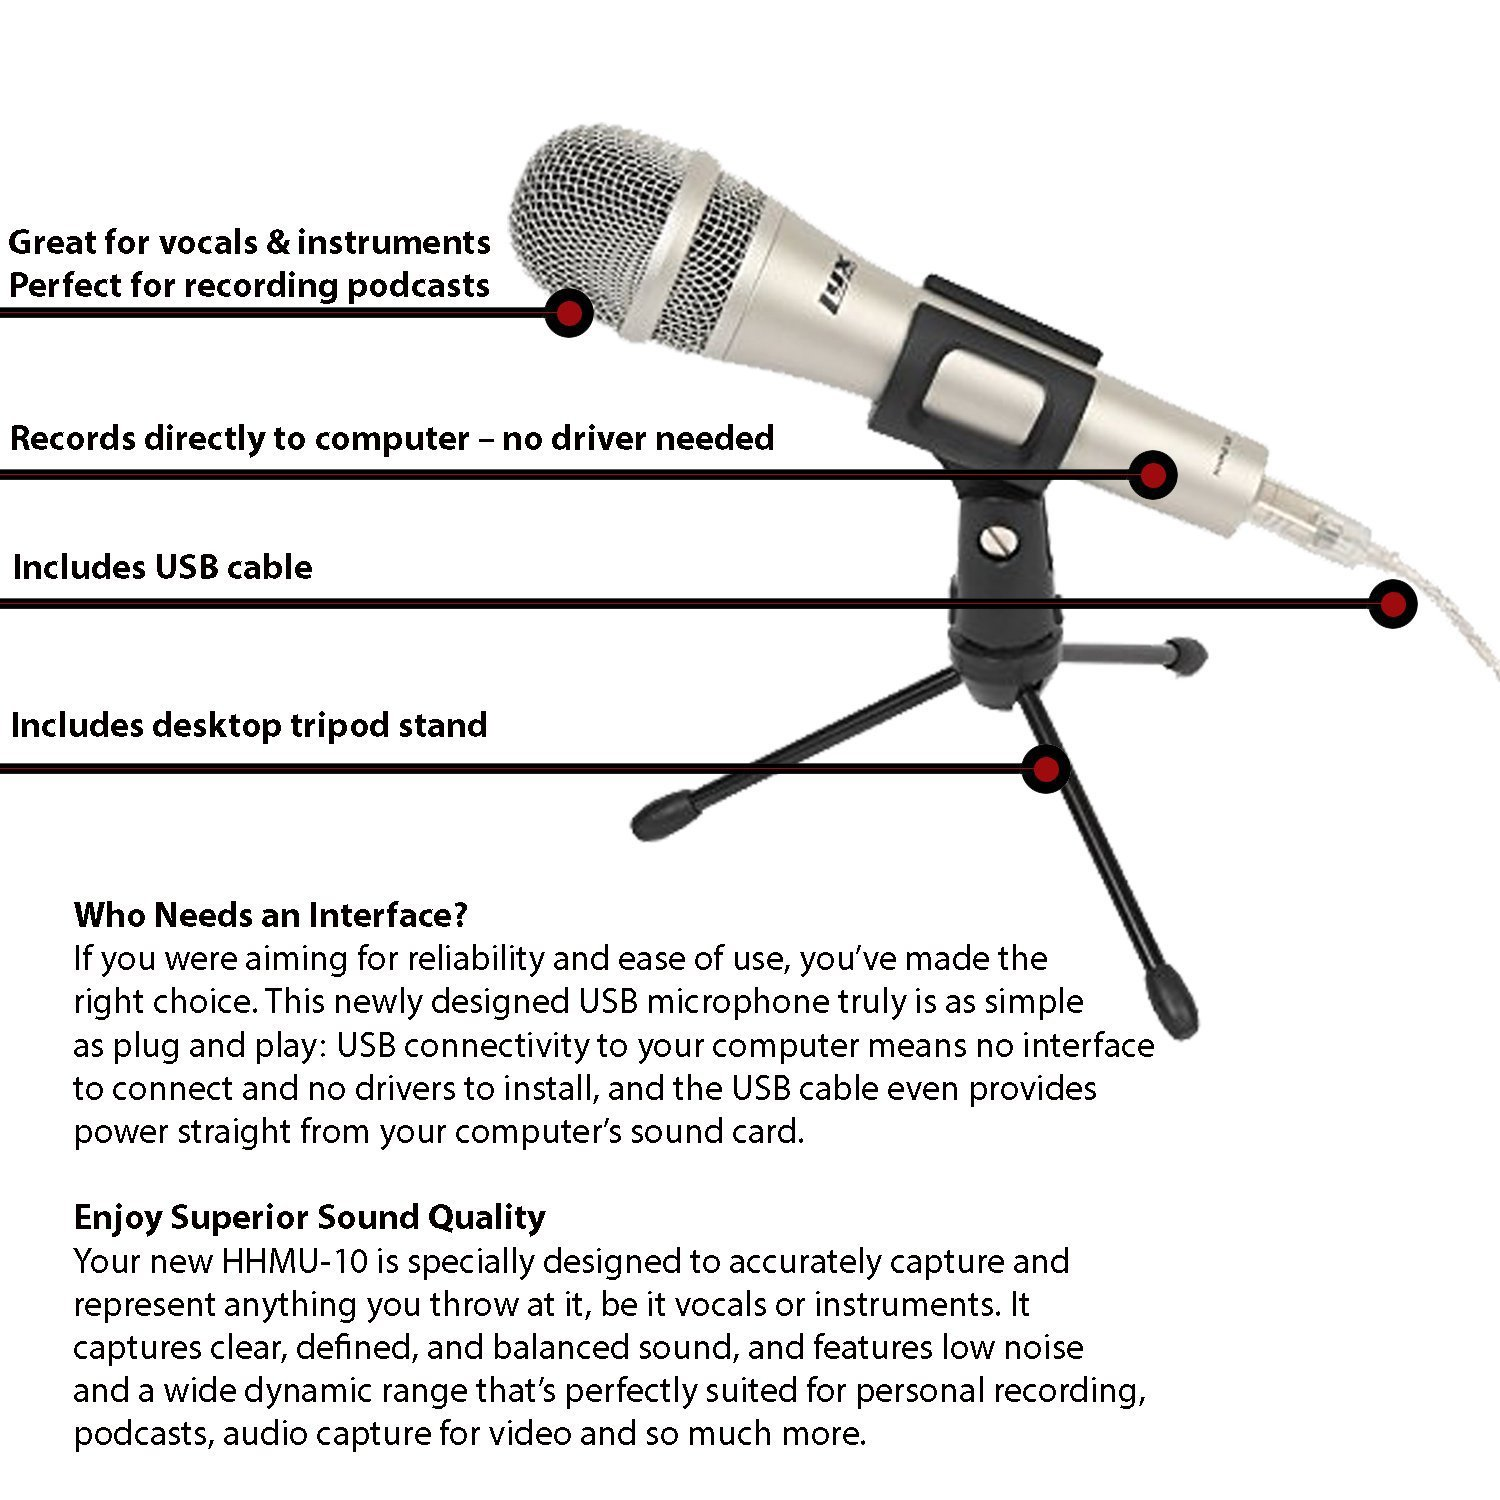 LyxPro HHMU-10 Cardioid Dynamic USB Microphone for Home Recording, Voice  Over & Podcasting, Includes Desktop Tripod Stand & USB Cable